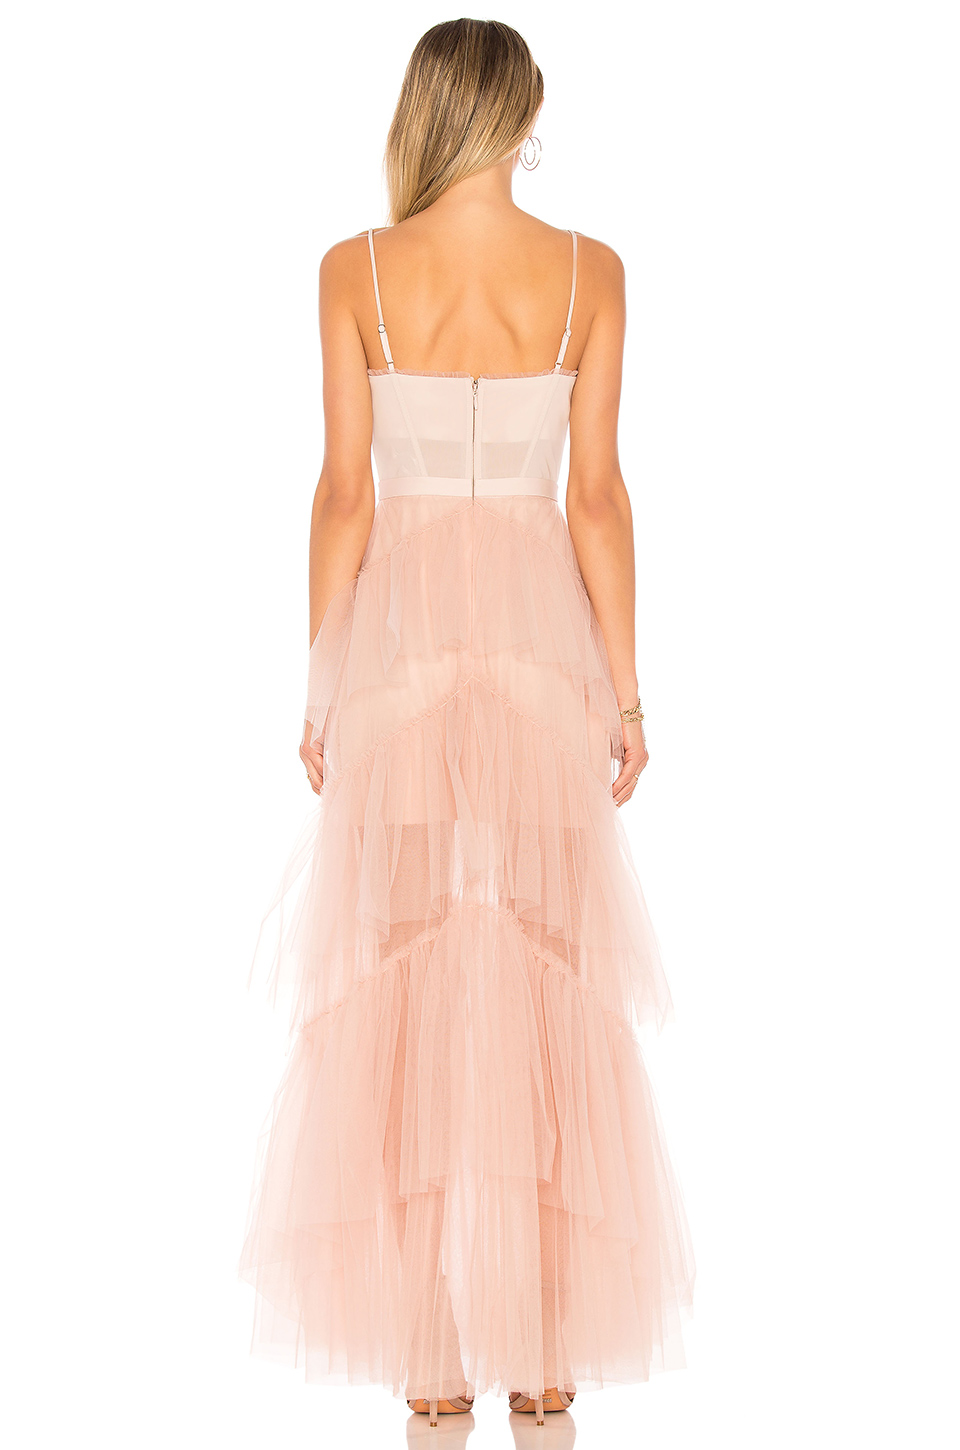 9e4ba8b32 Buy Original BCBGMAXAZRIA Oly Long Tulle Gown In Bare Pink at ...